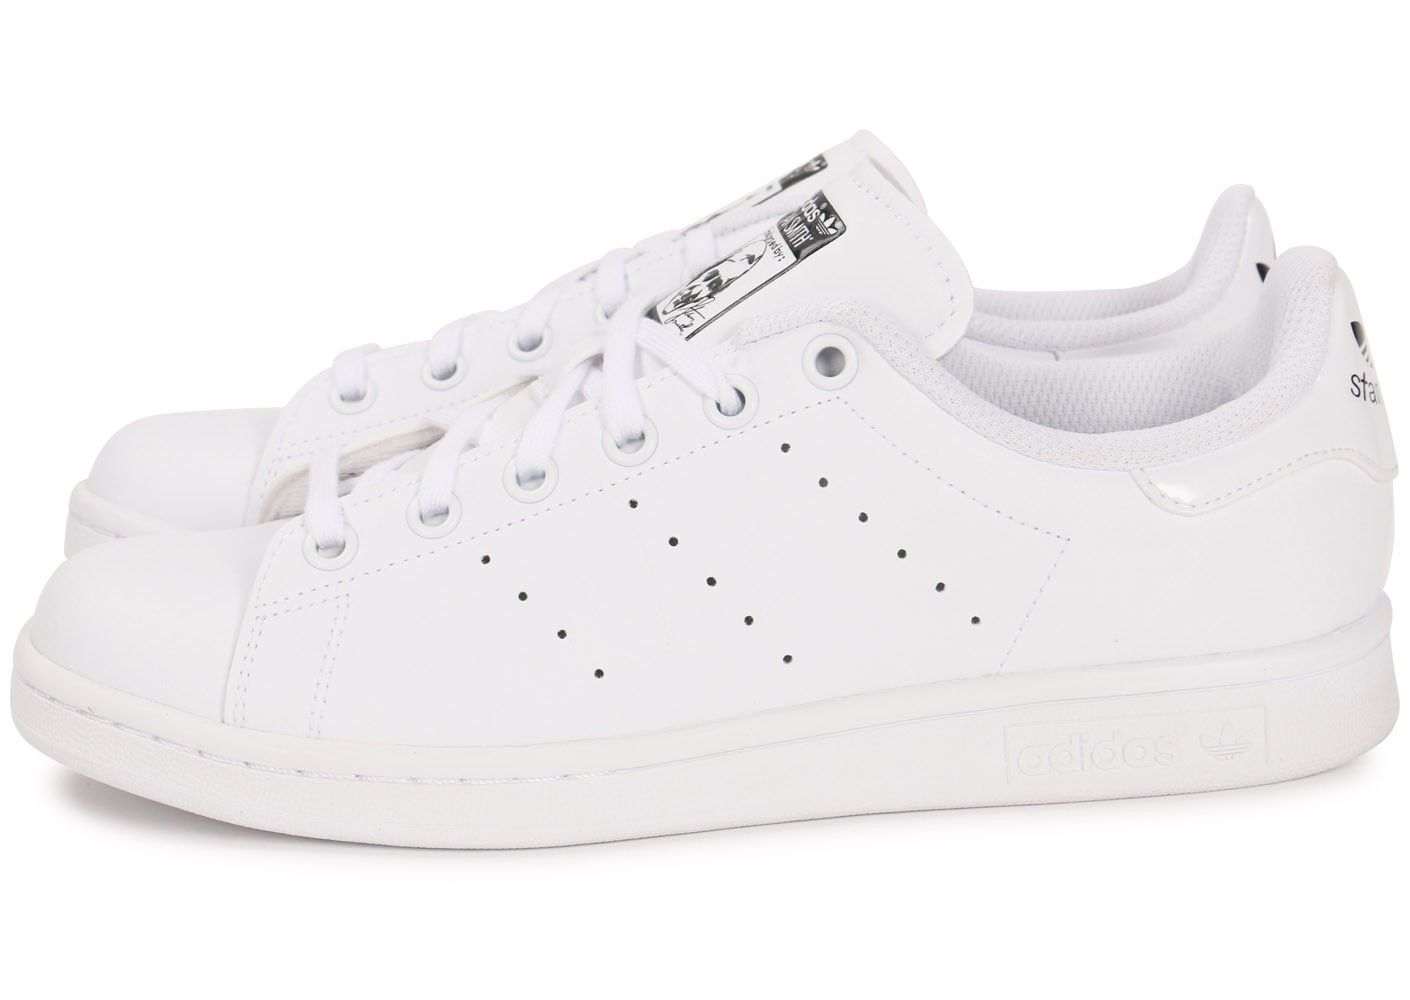 Stan Femme Smith Chausport 65 Adidas Junior Chaussures Blanche 29YHIEDW